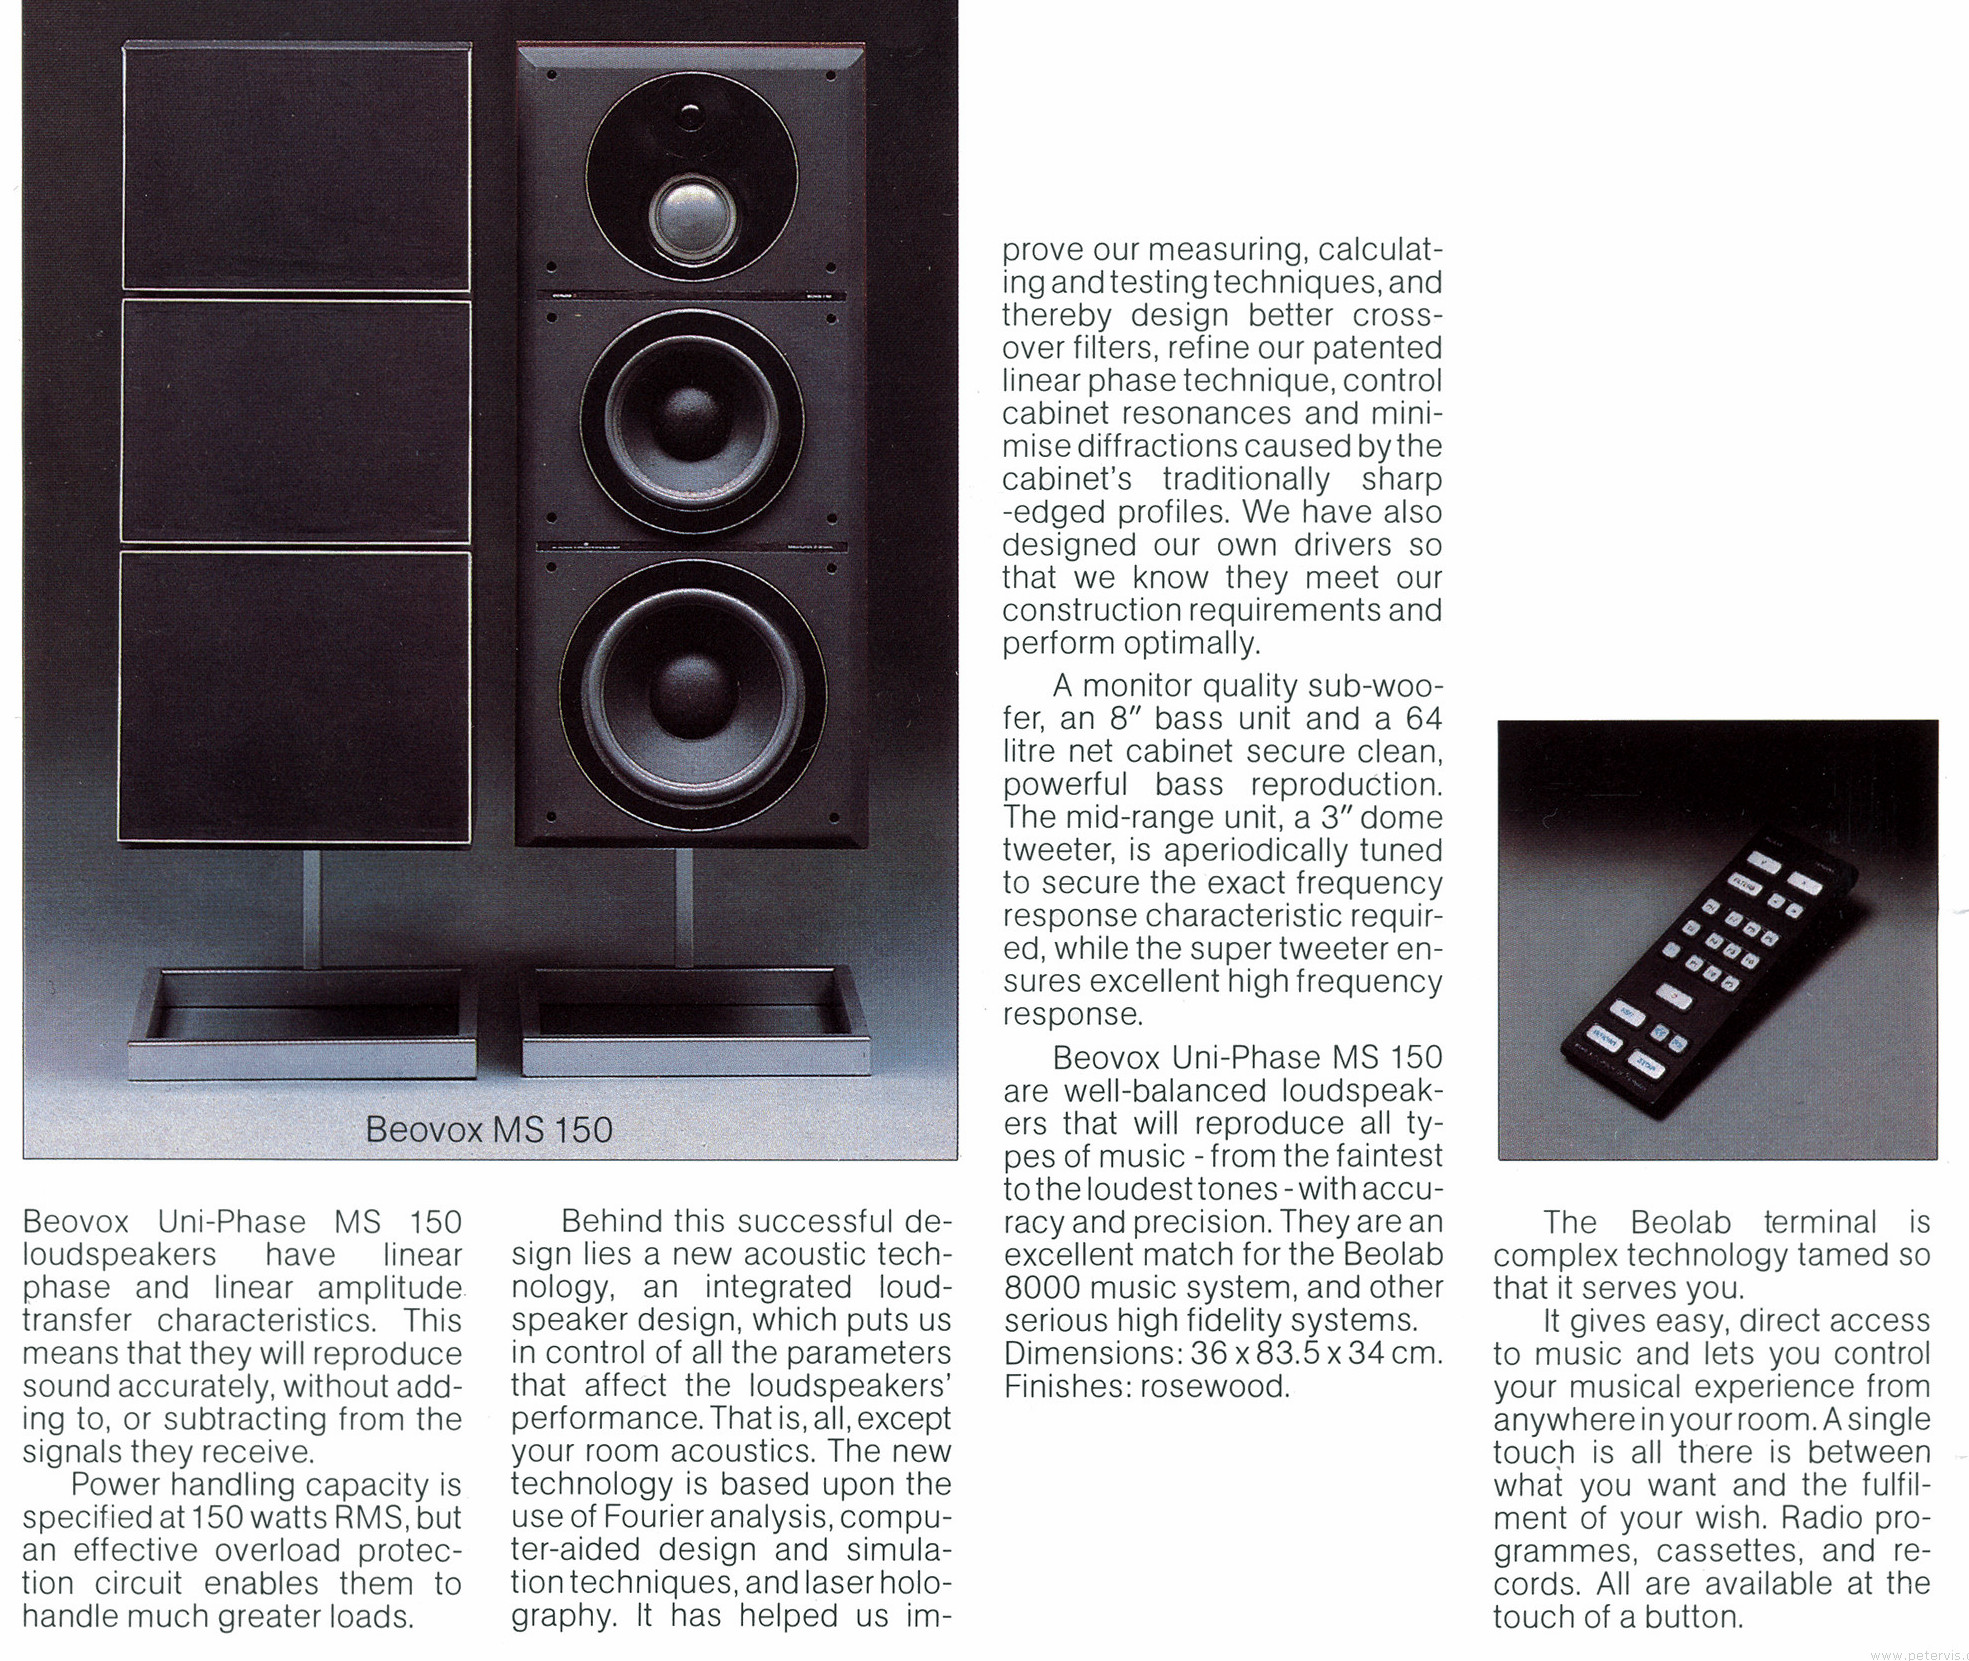 Beovox-ms150-speakers.jpg